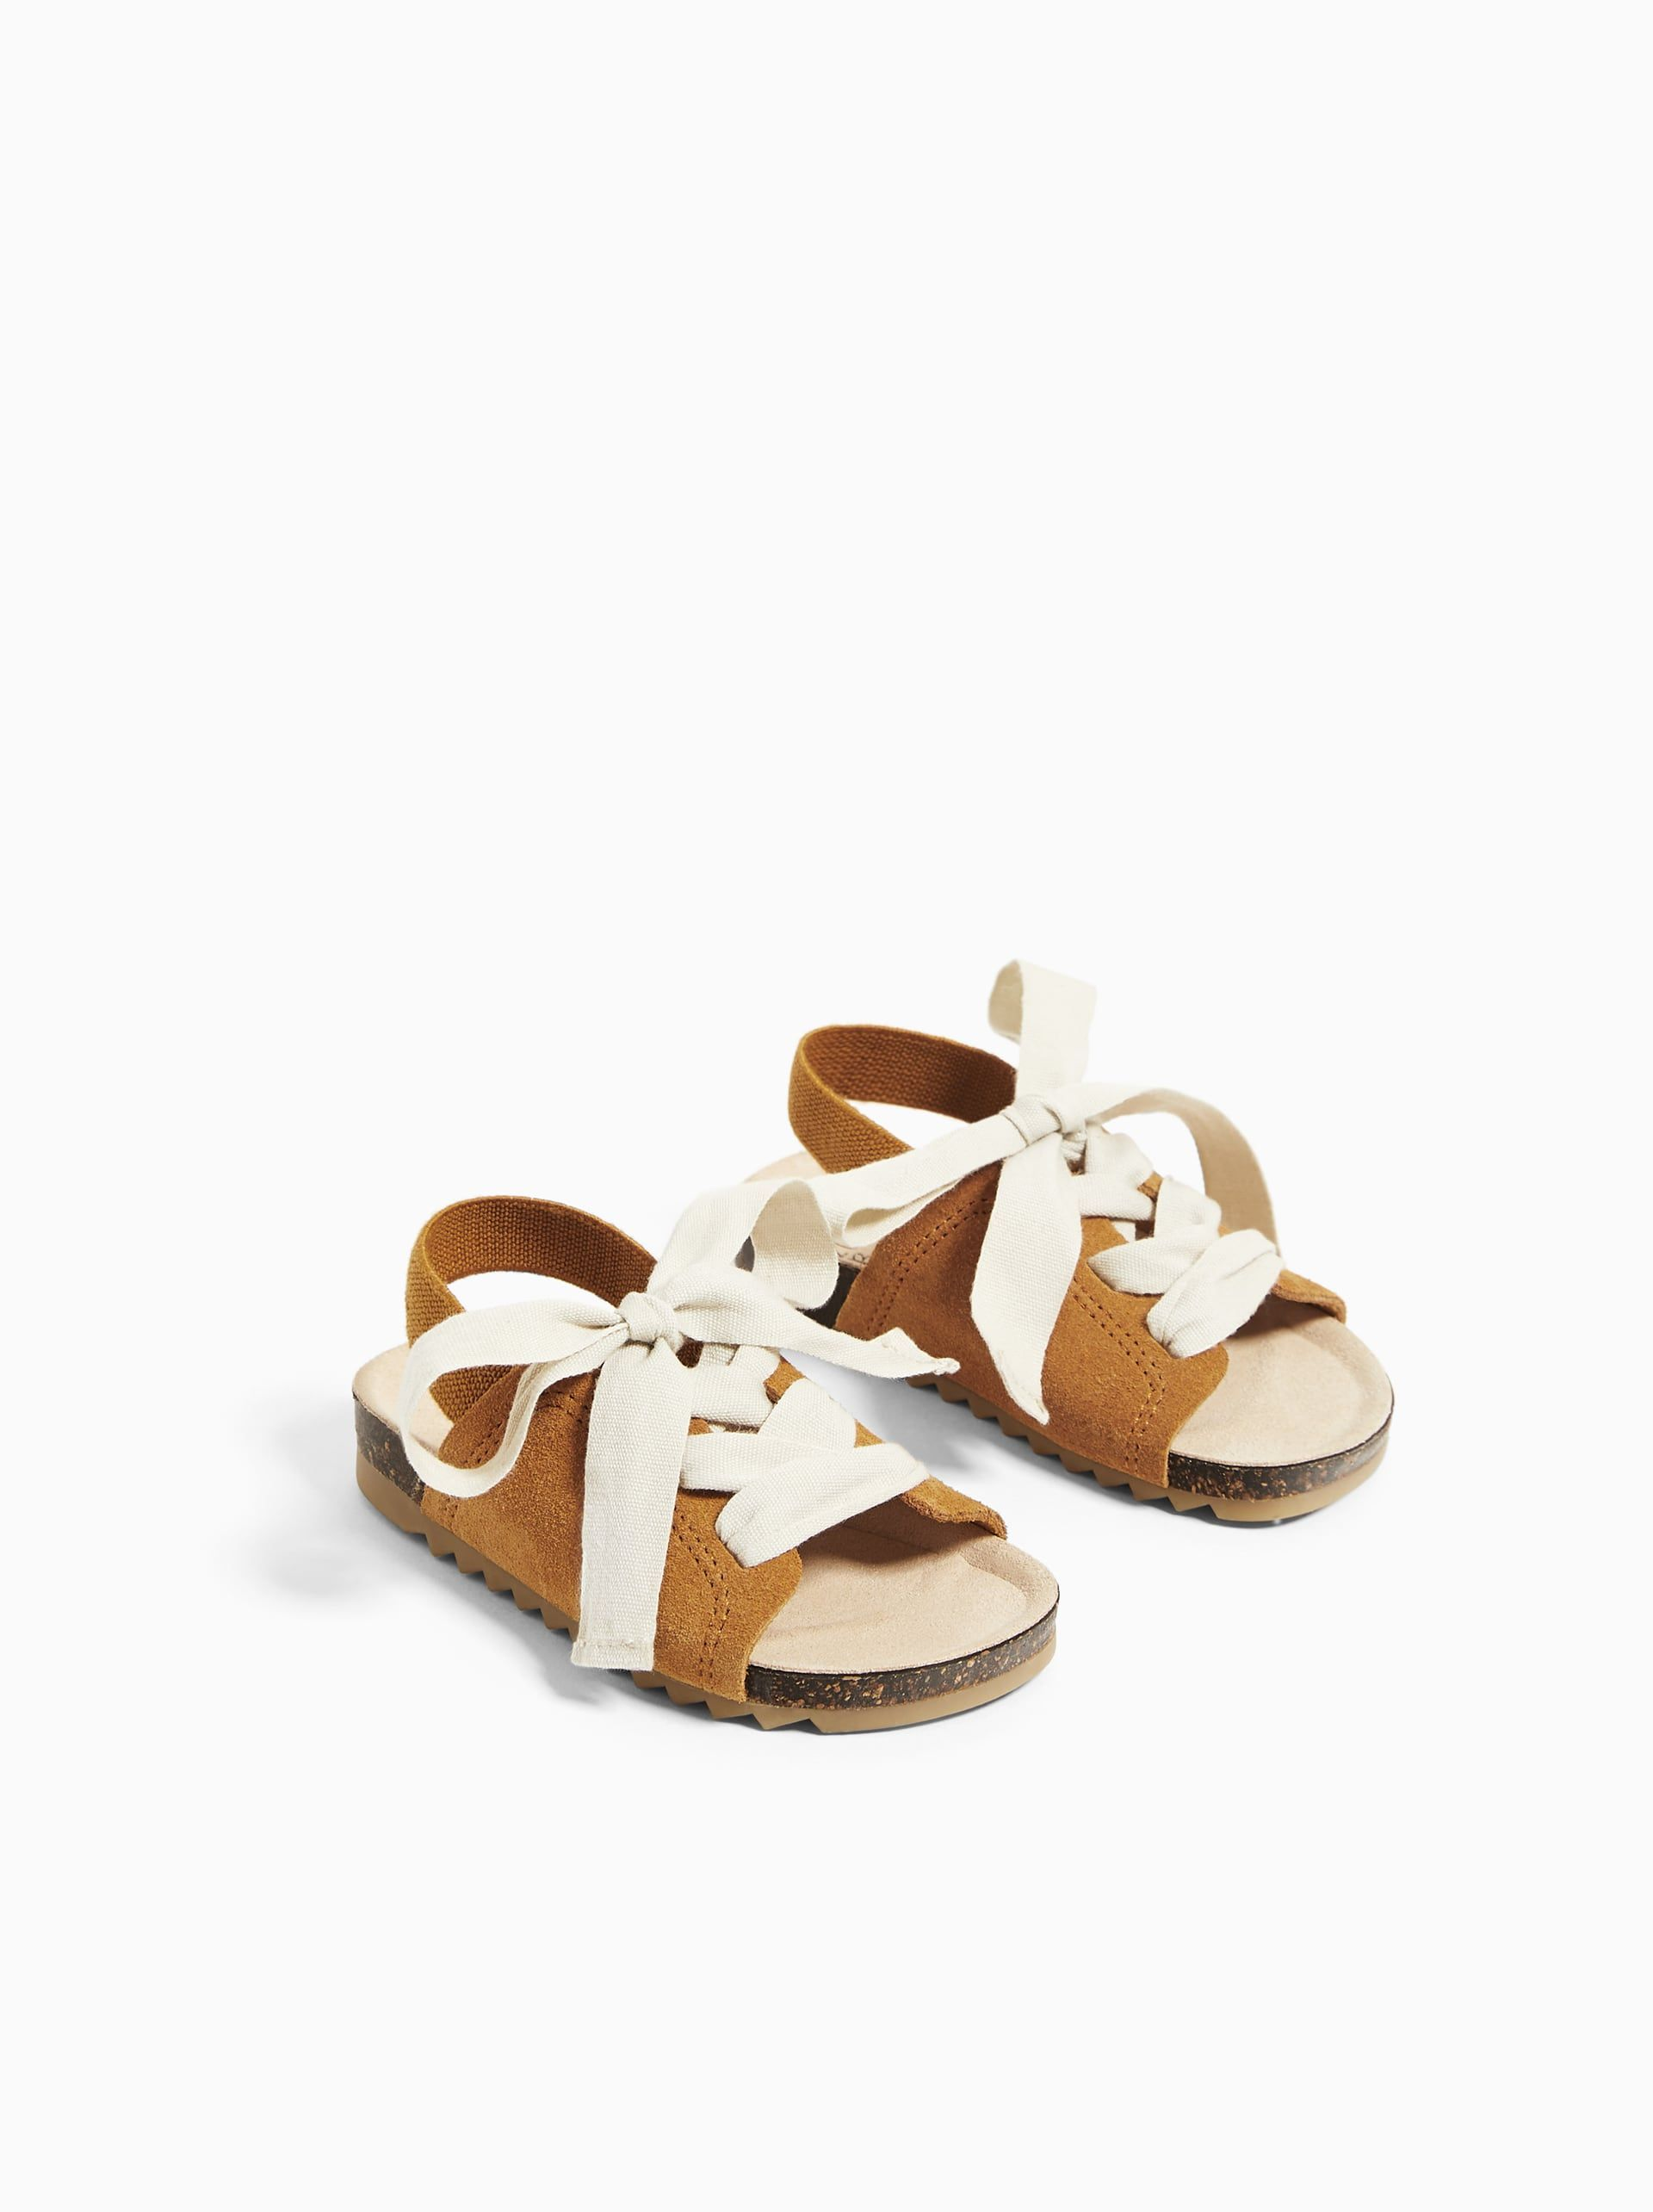 Kid shoes, Leather sandals, Leather